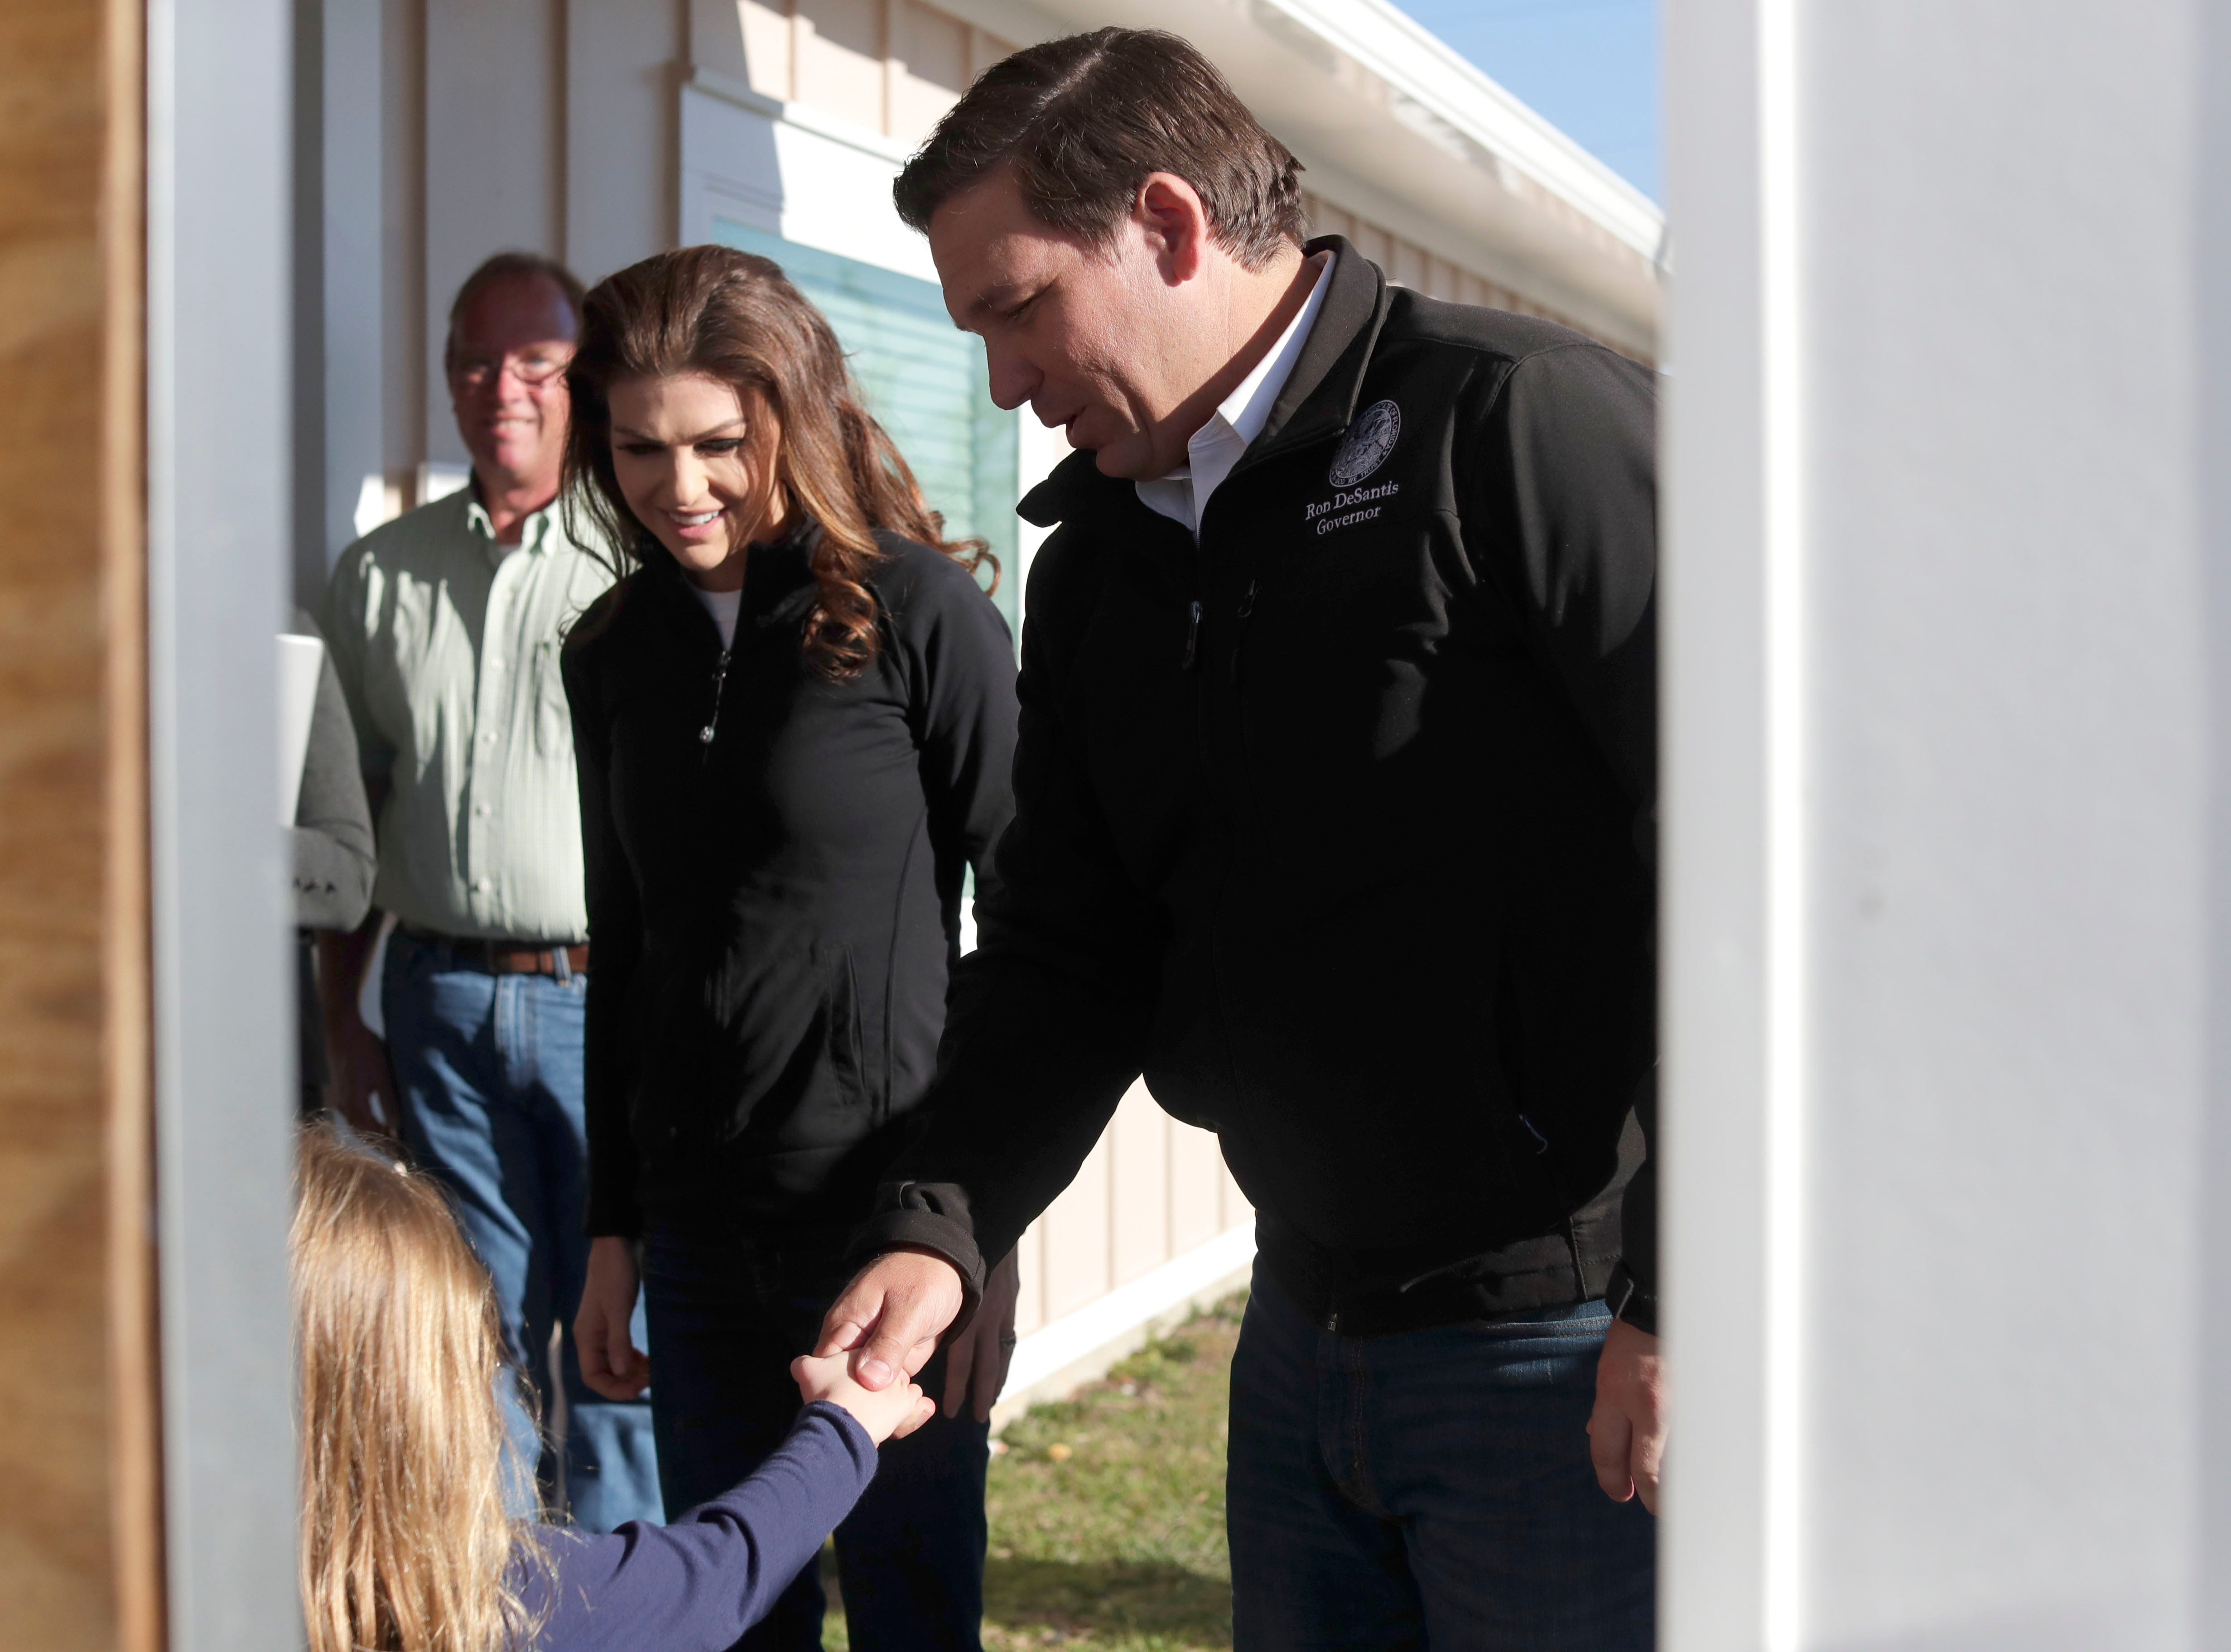 Gov. Ron DeSantis greets a young girl from Mexico Beach outside of city hall, Wednesday, Jan. 9, 2019. Hurricane Michael left the panhandle in a total disarray on Oct. 10, 2018.